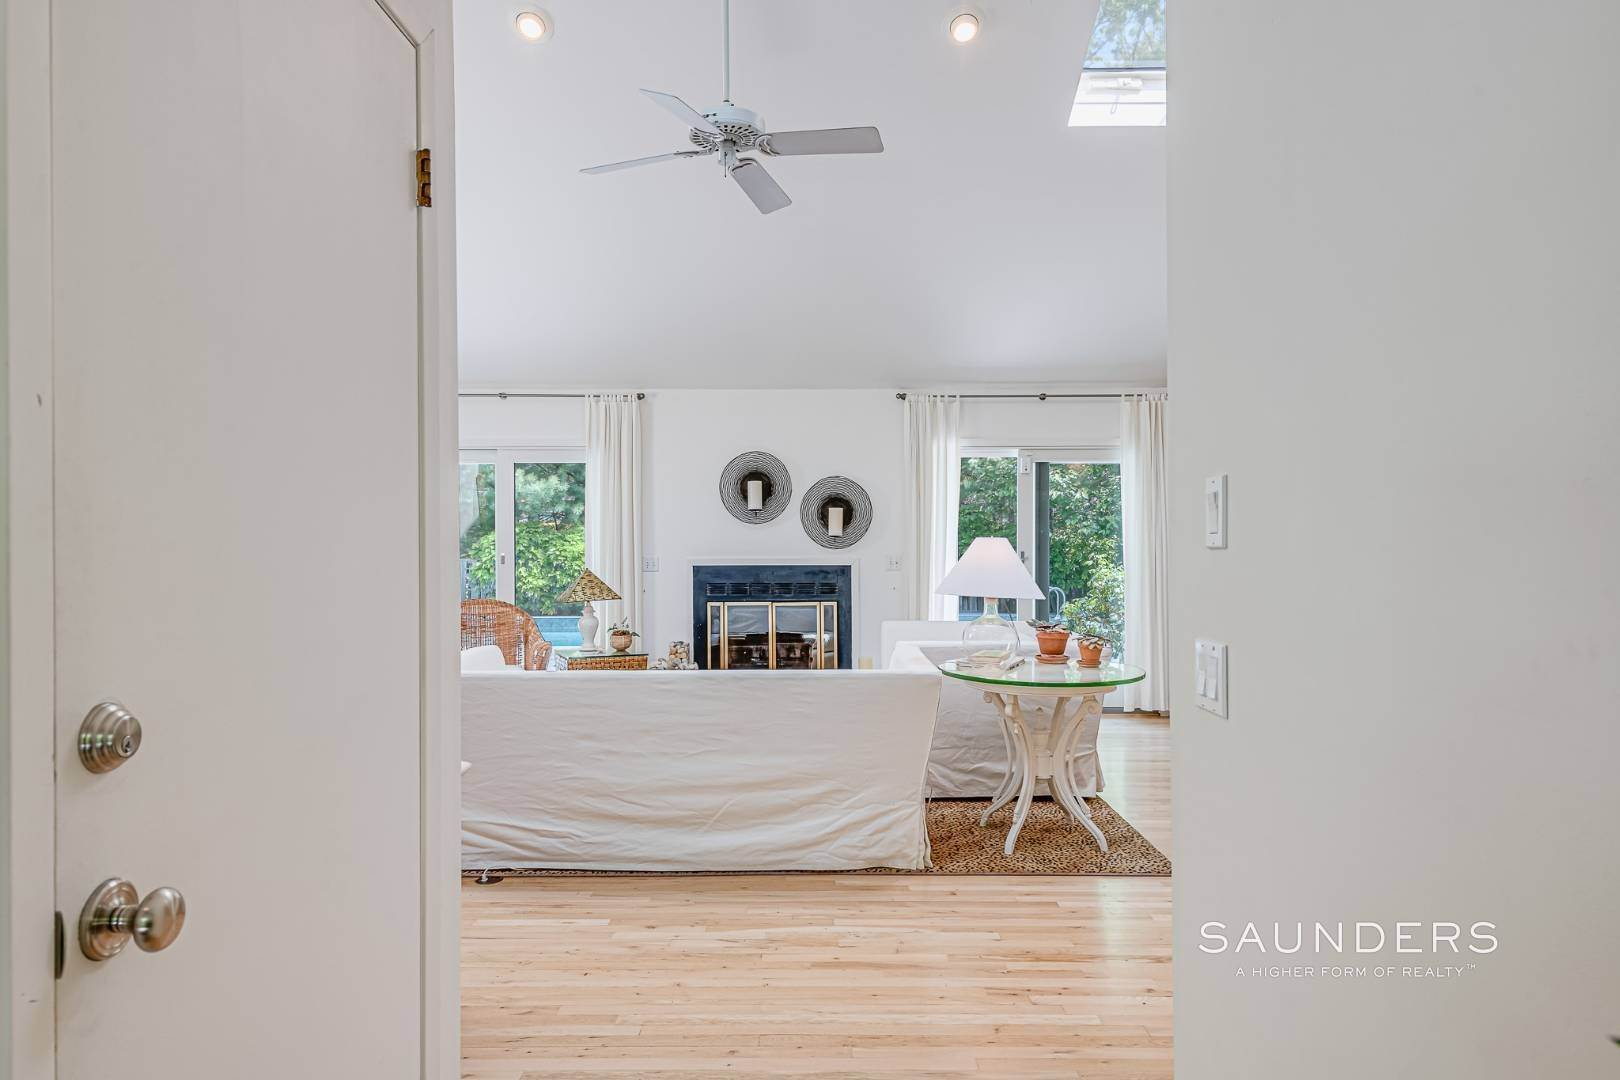 5. Single Family Homes for Sale at Beach House By The Bay 31 Long Woods Lane, East Hampton, East Hampton Town, NY 11937